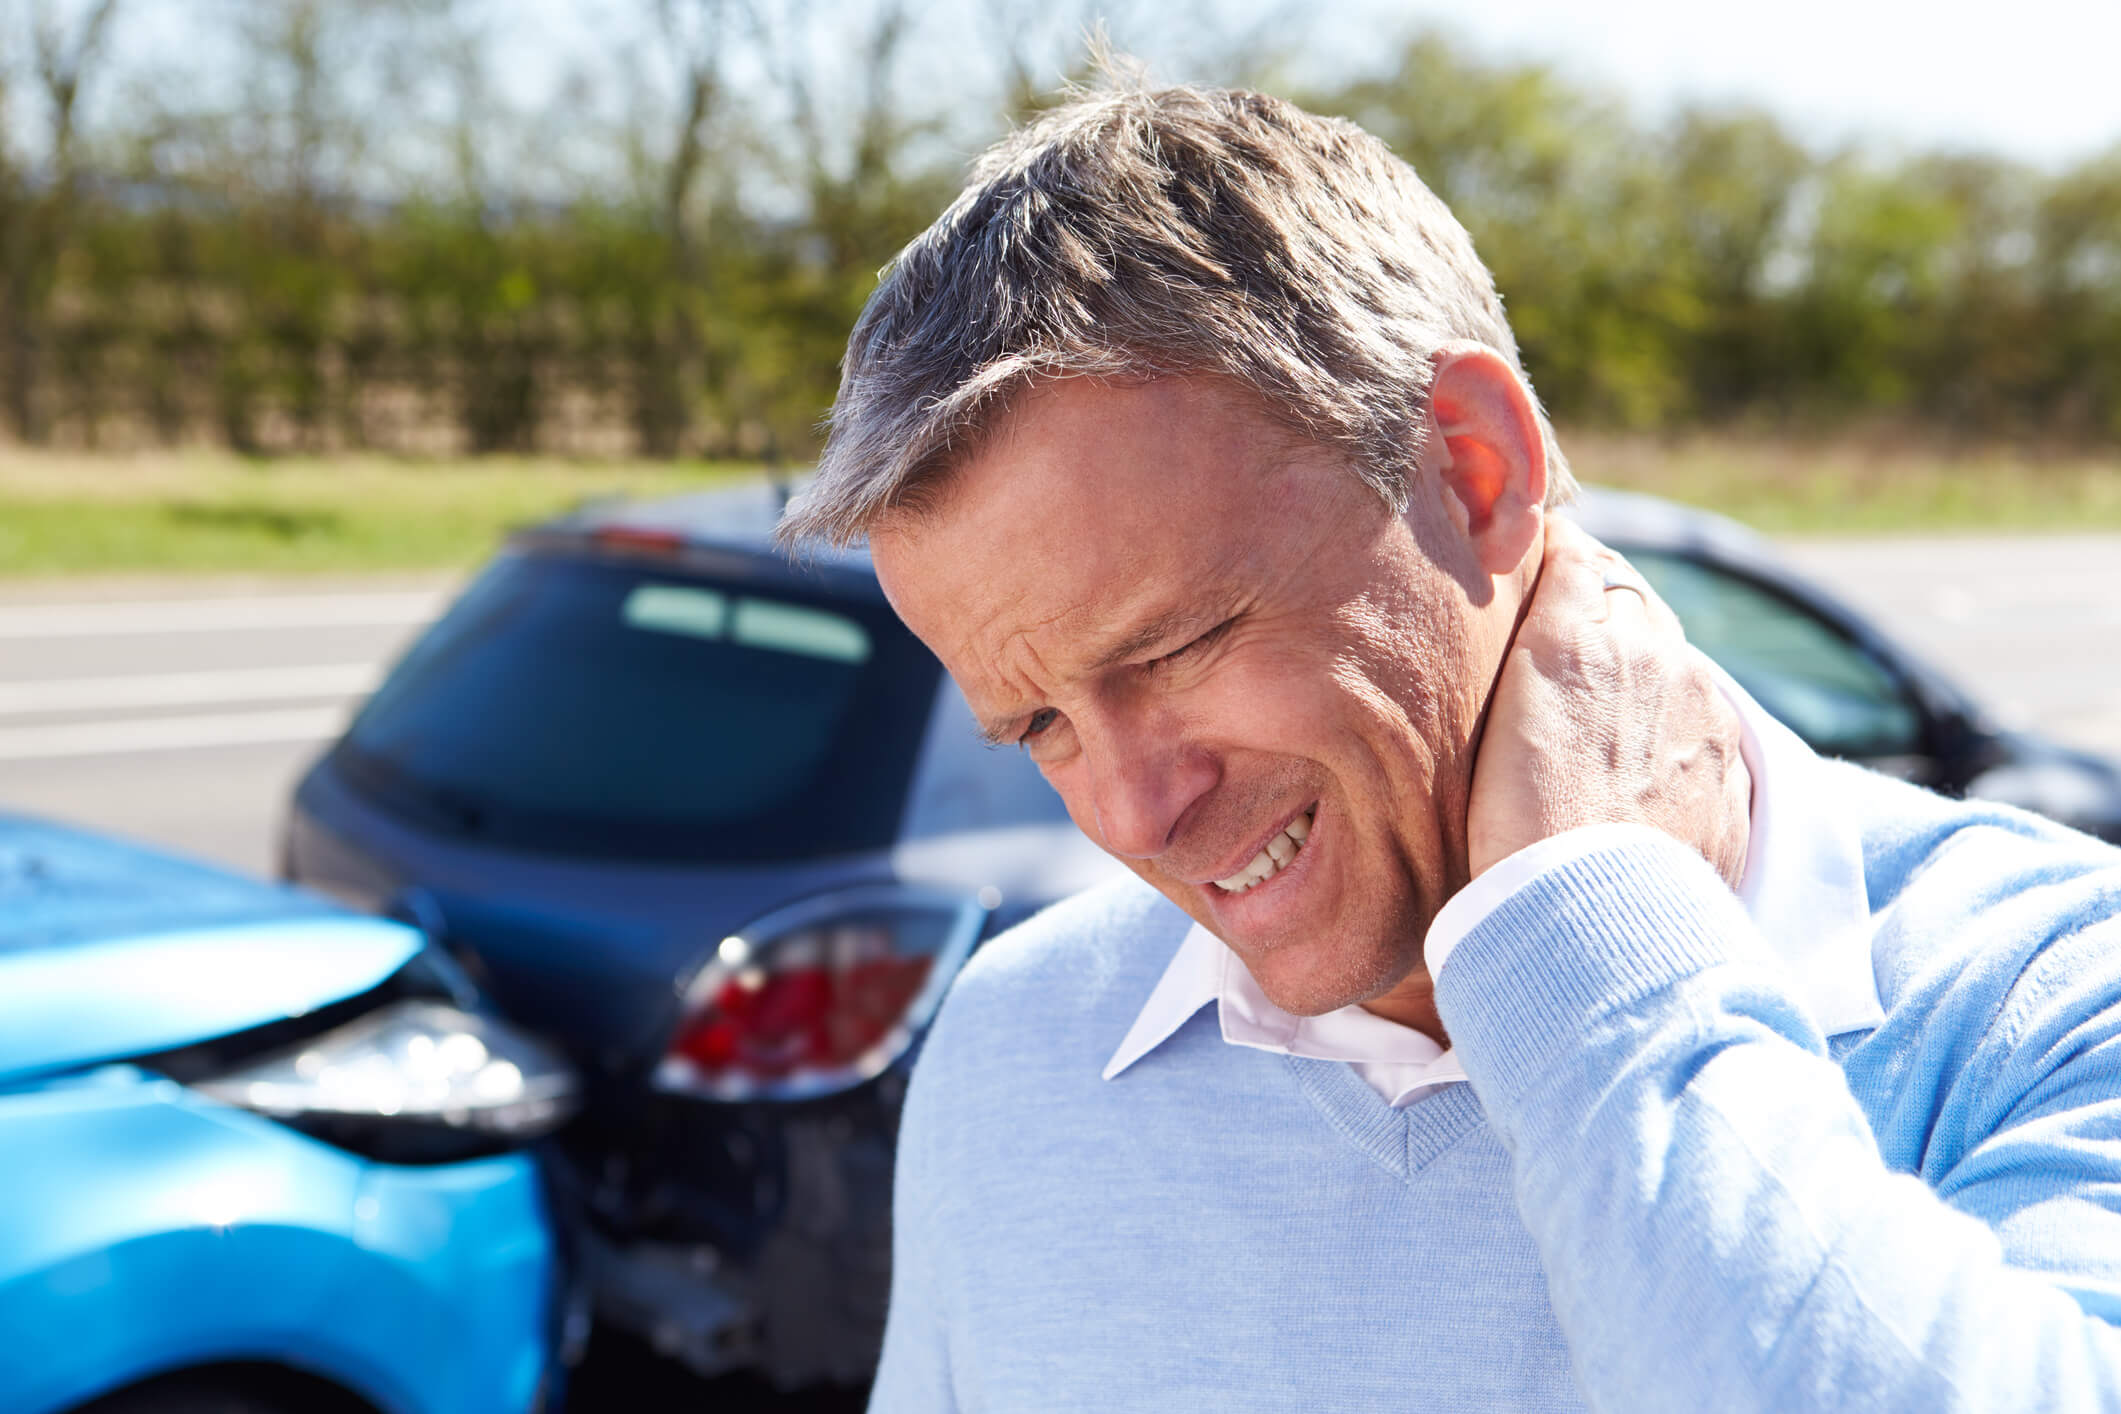 If you are injured from a car accident, contact Salmu Law Firm in San Diego and EL Cajon. Our personal injury lawyers and attorneys can get you cash compensation.